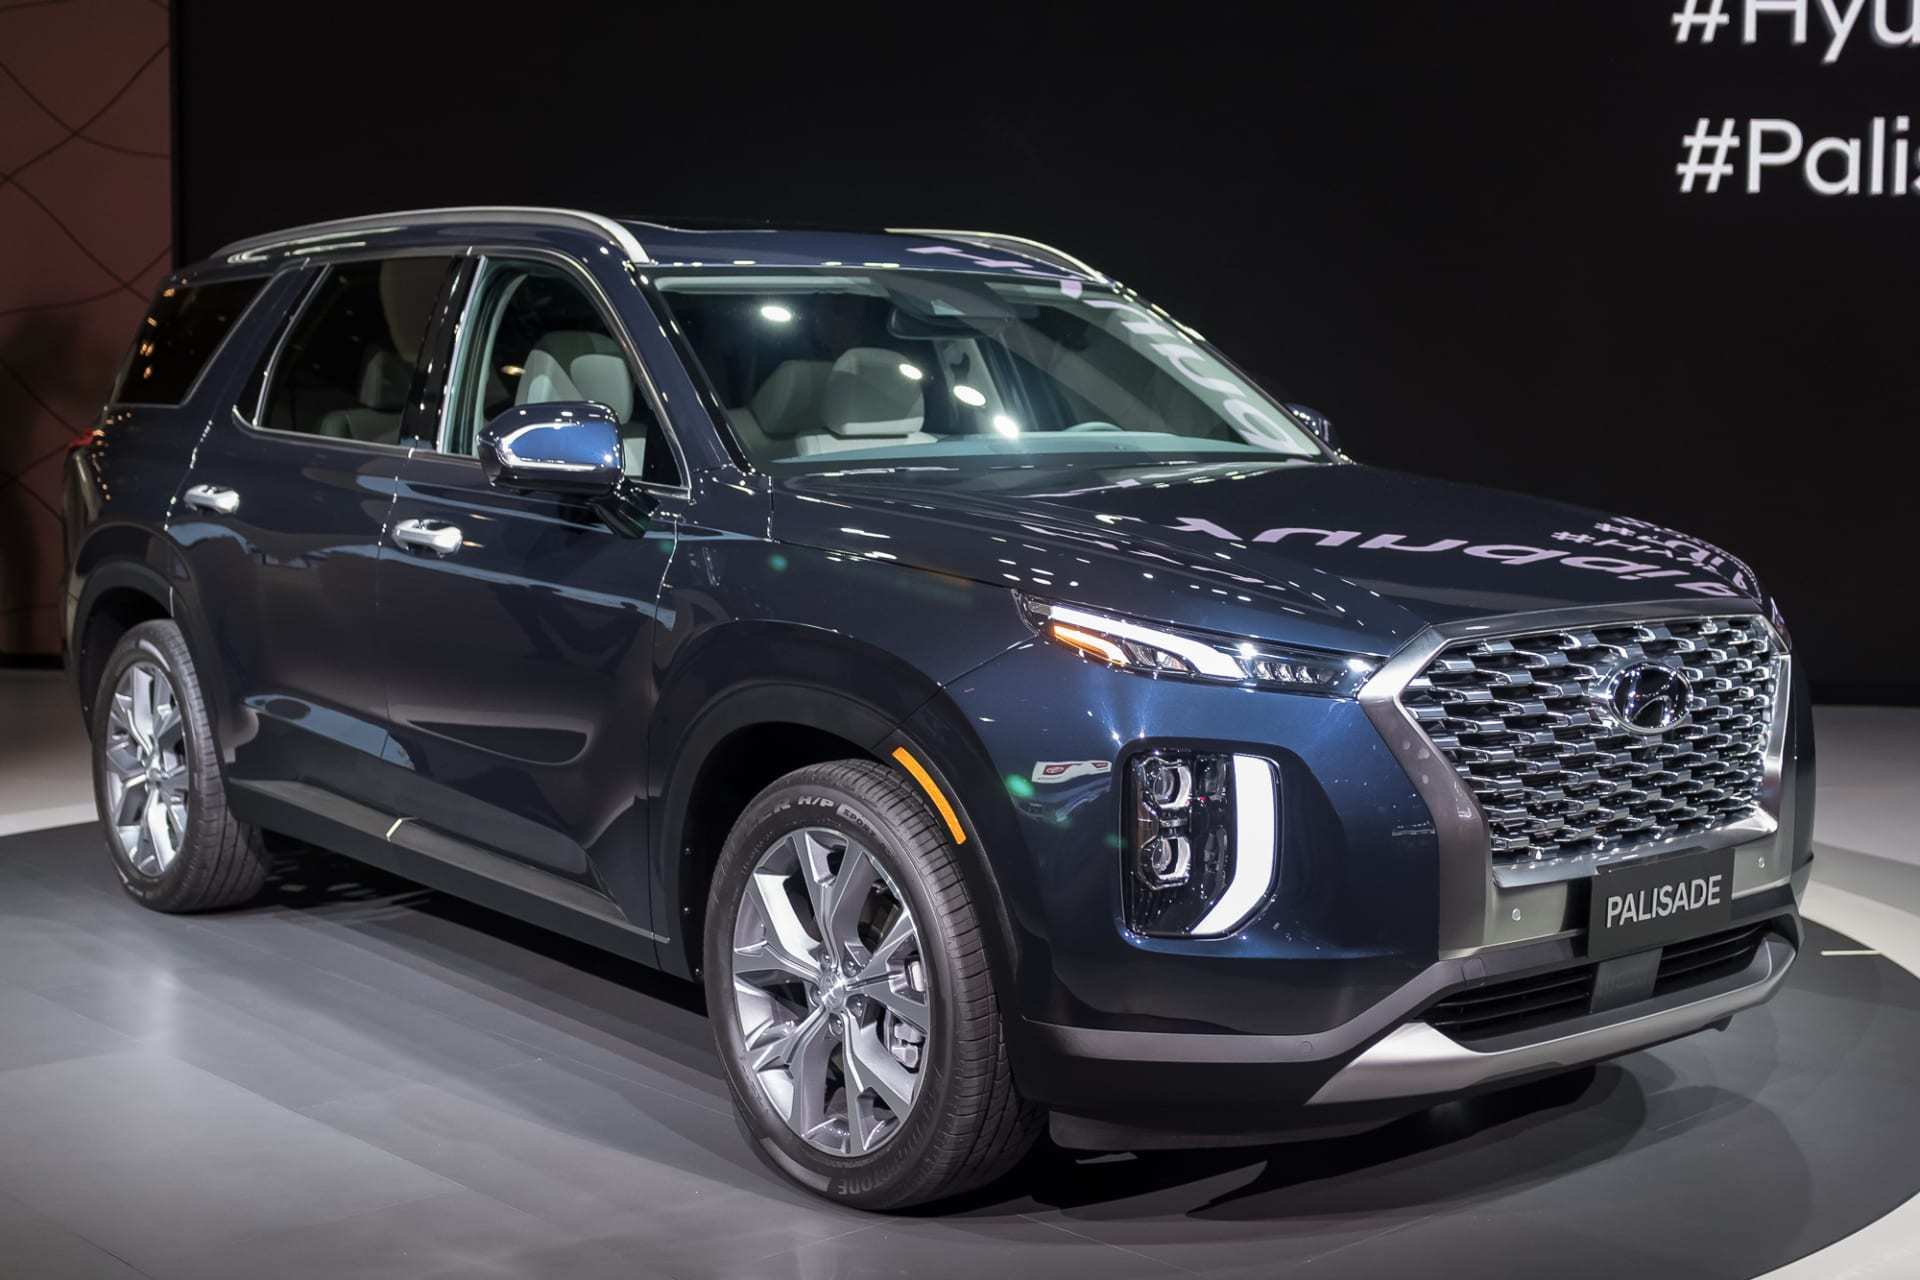 97 The Cost Of 2020 Hyundai Palisade New Review for Cost Of 2020 Hyundai Palisade